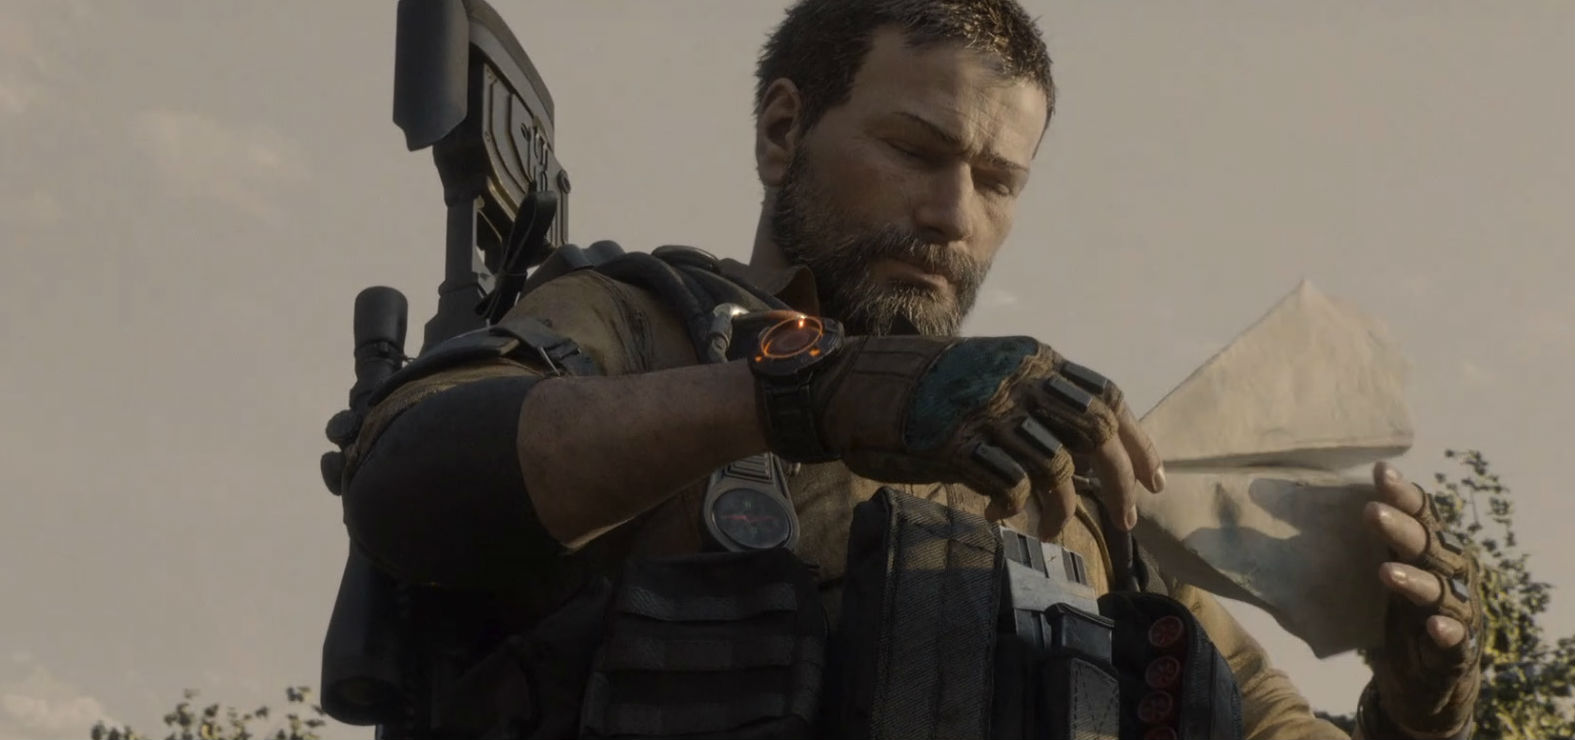 Multiplayer raids, free DLC and more accompany The Division 2's grim new trailer screenshot